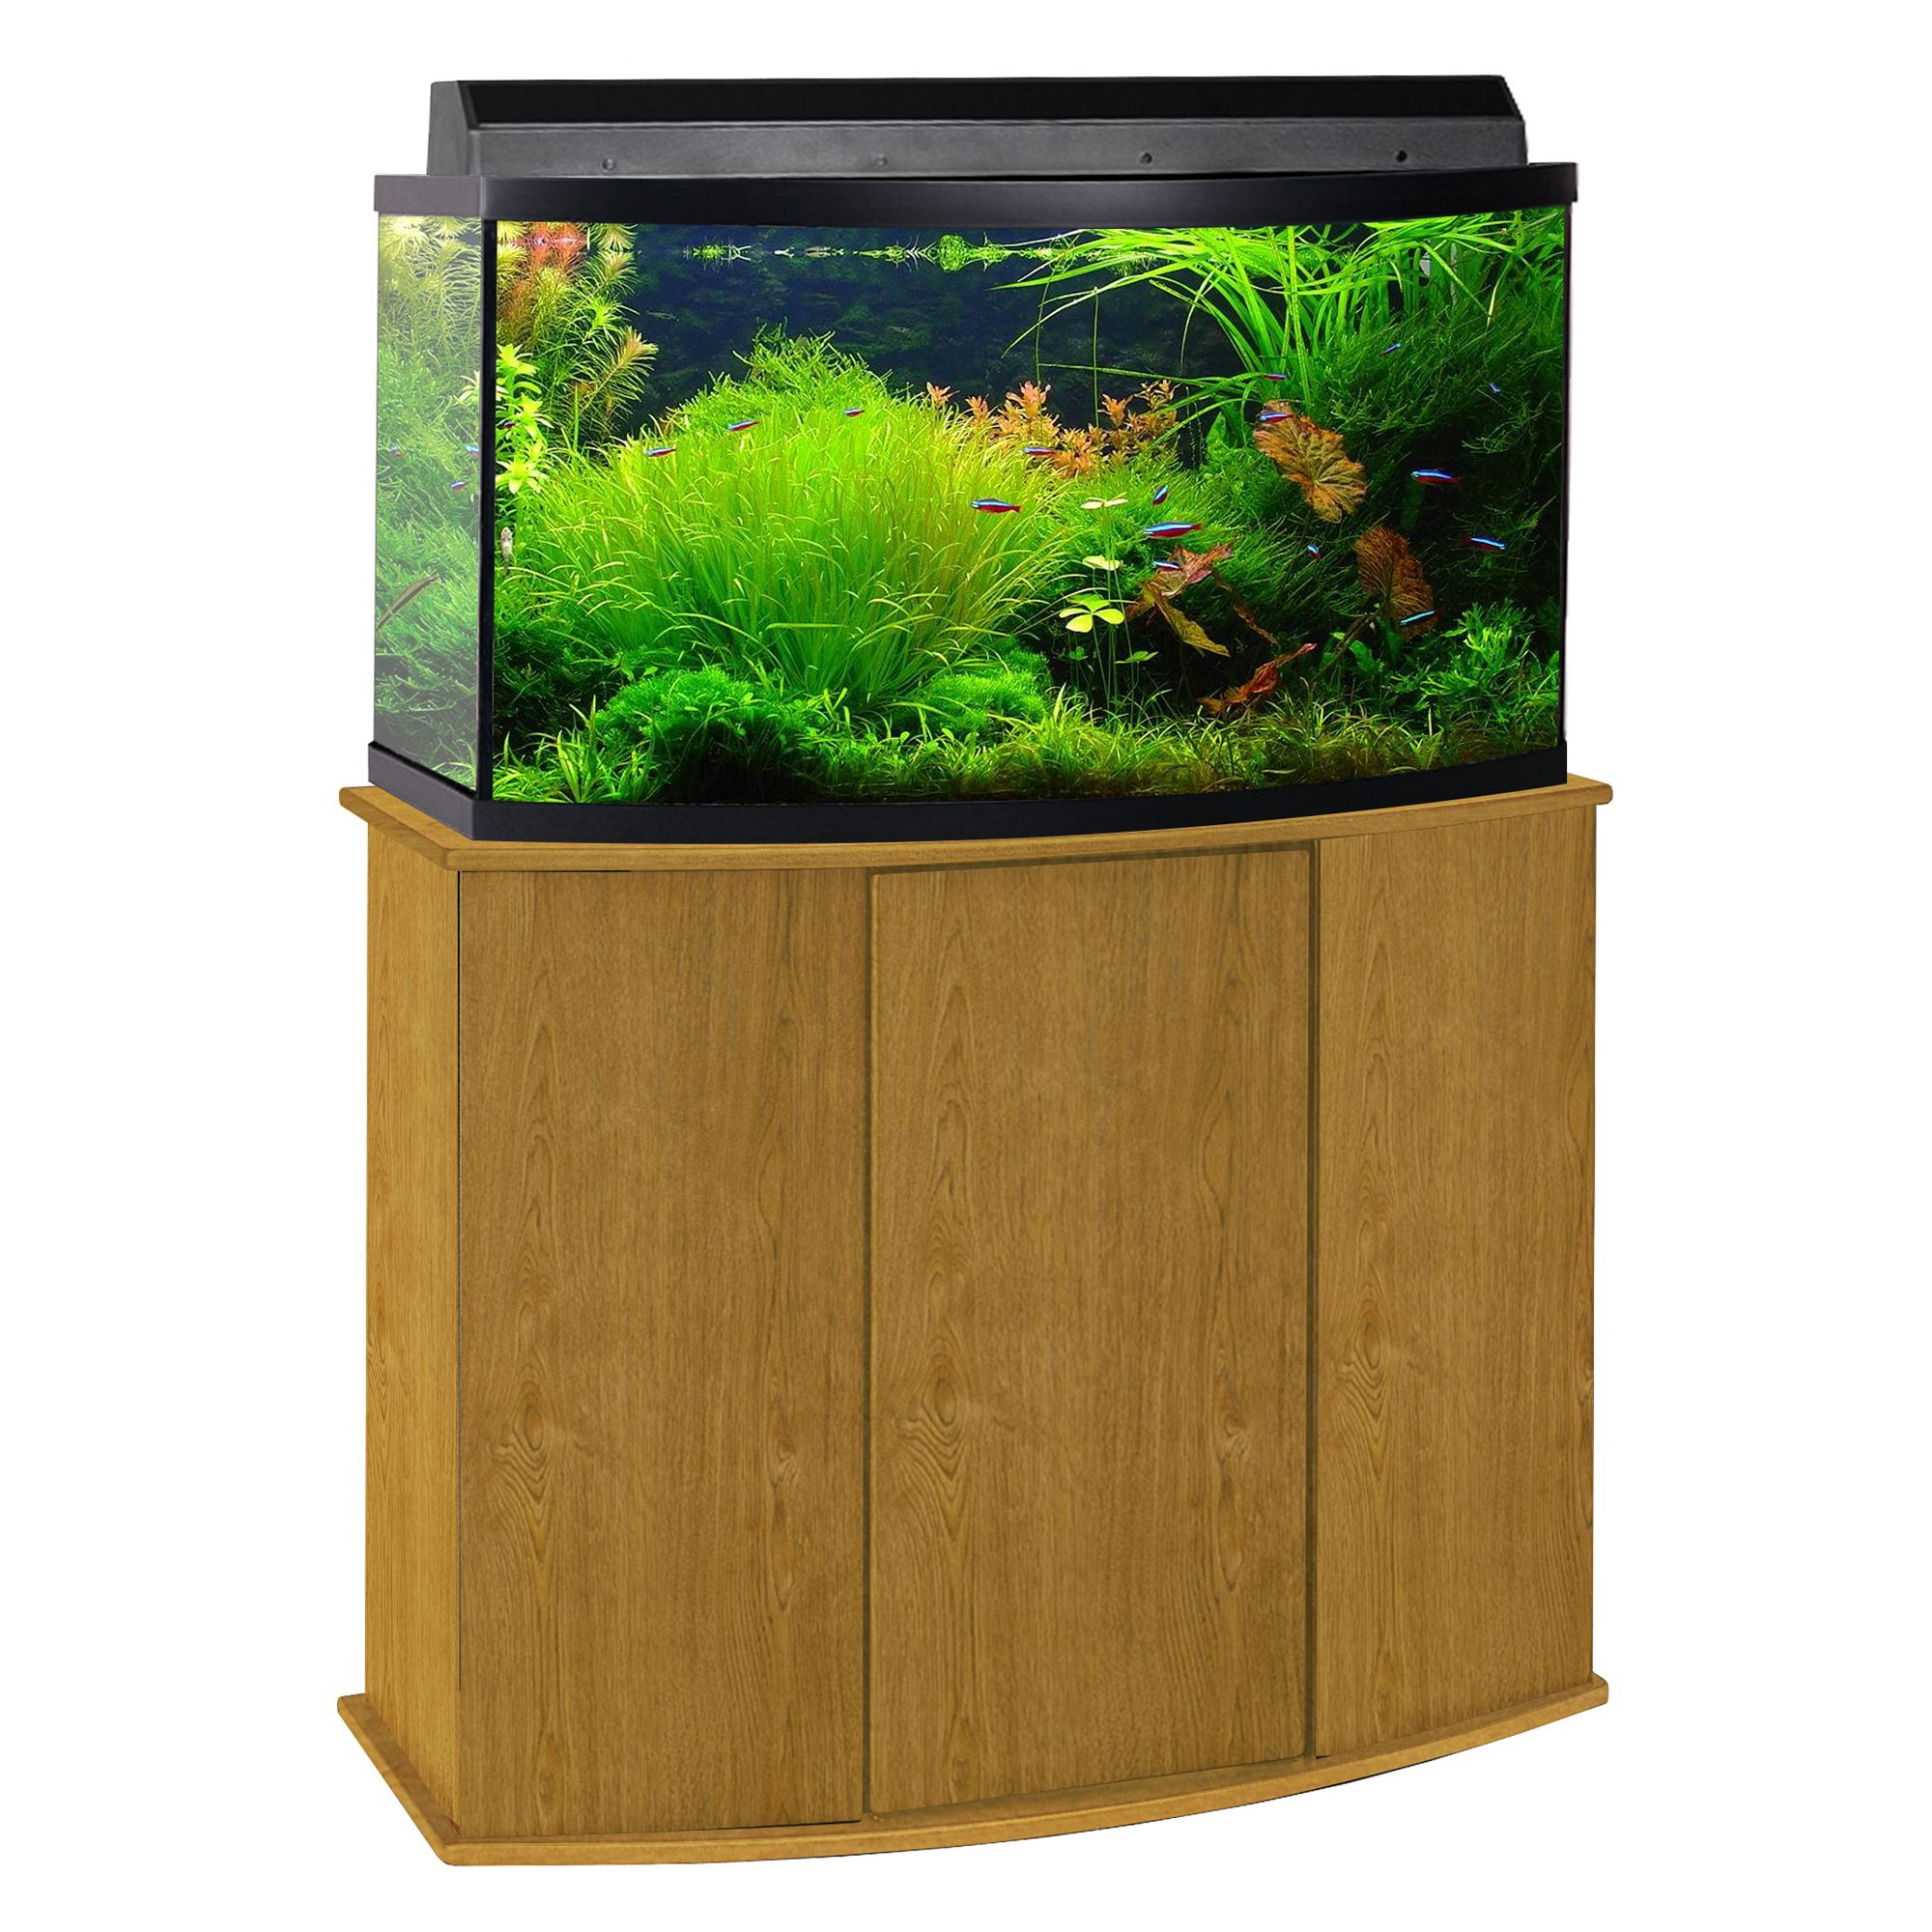 Ameriwood 29 gallon aquarium stand 20 gallon aquarium for 20 gallon fish tank dimensions